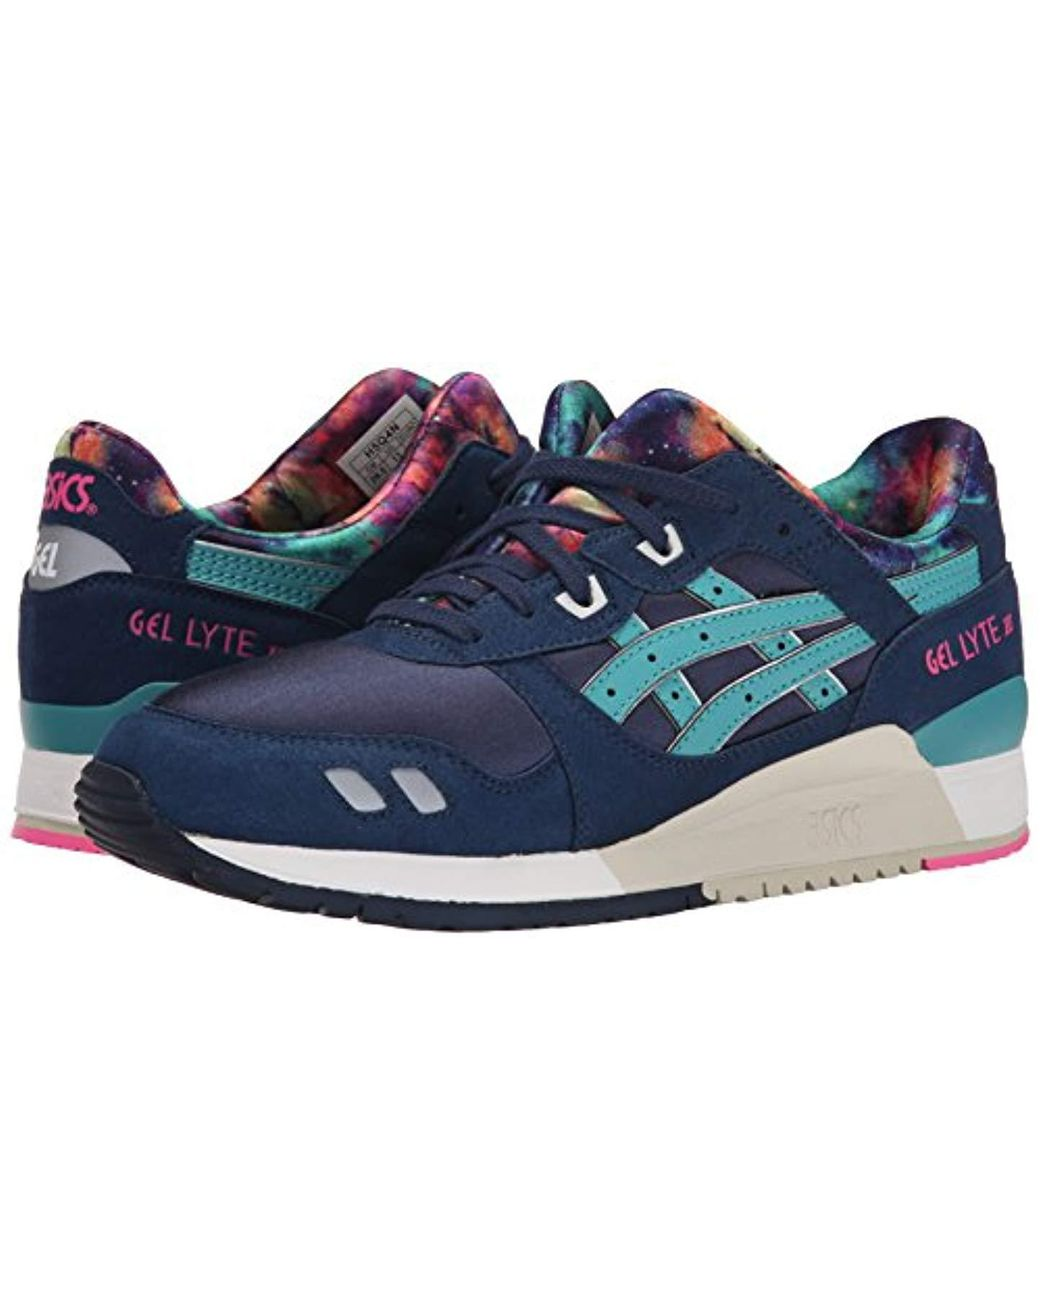 5189a832 Asics Gel-lyte Iii Retro Sneaker in Blue for Men - Lyst